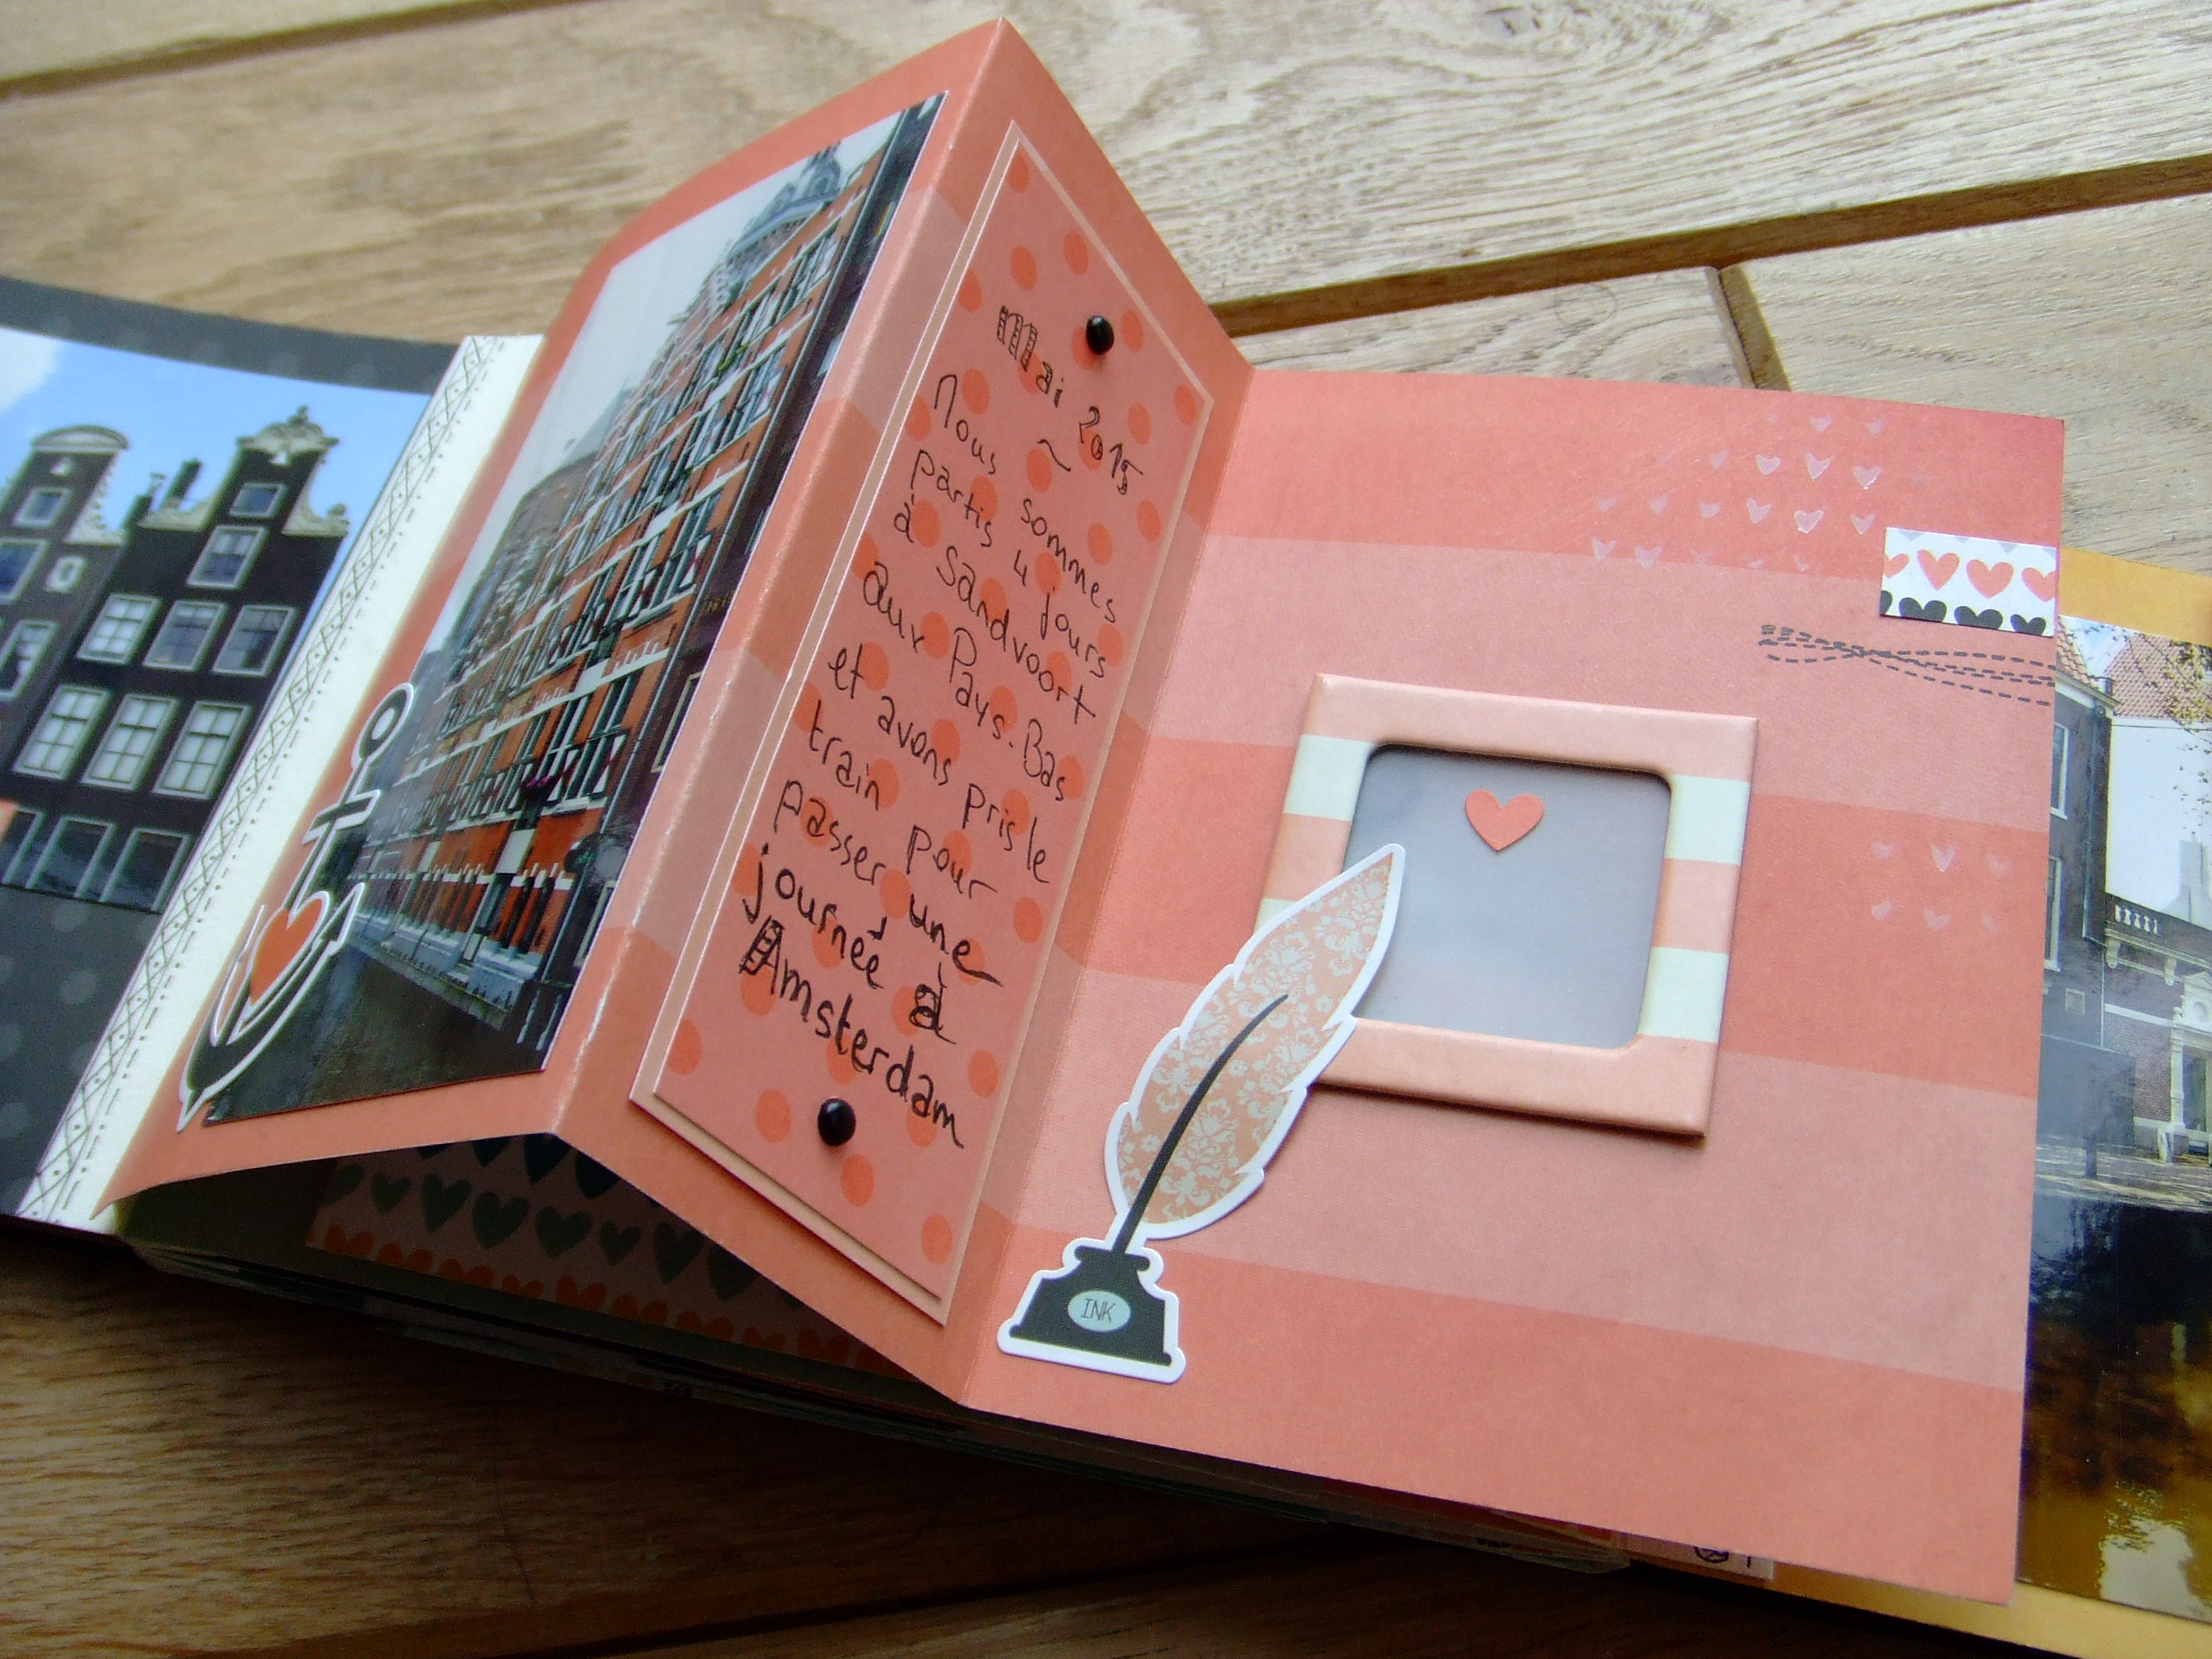 Projet d'atelier Loving This mini-album scrap scrapbooking tuto tutoriel